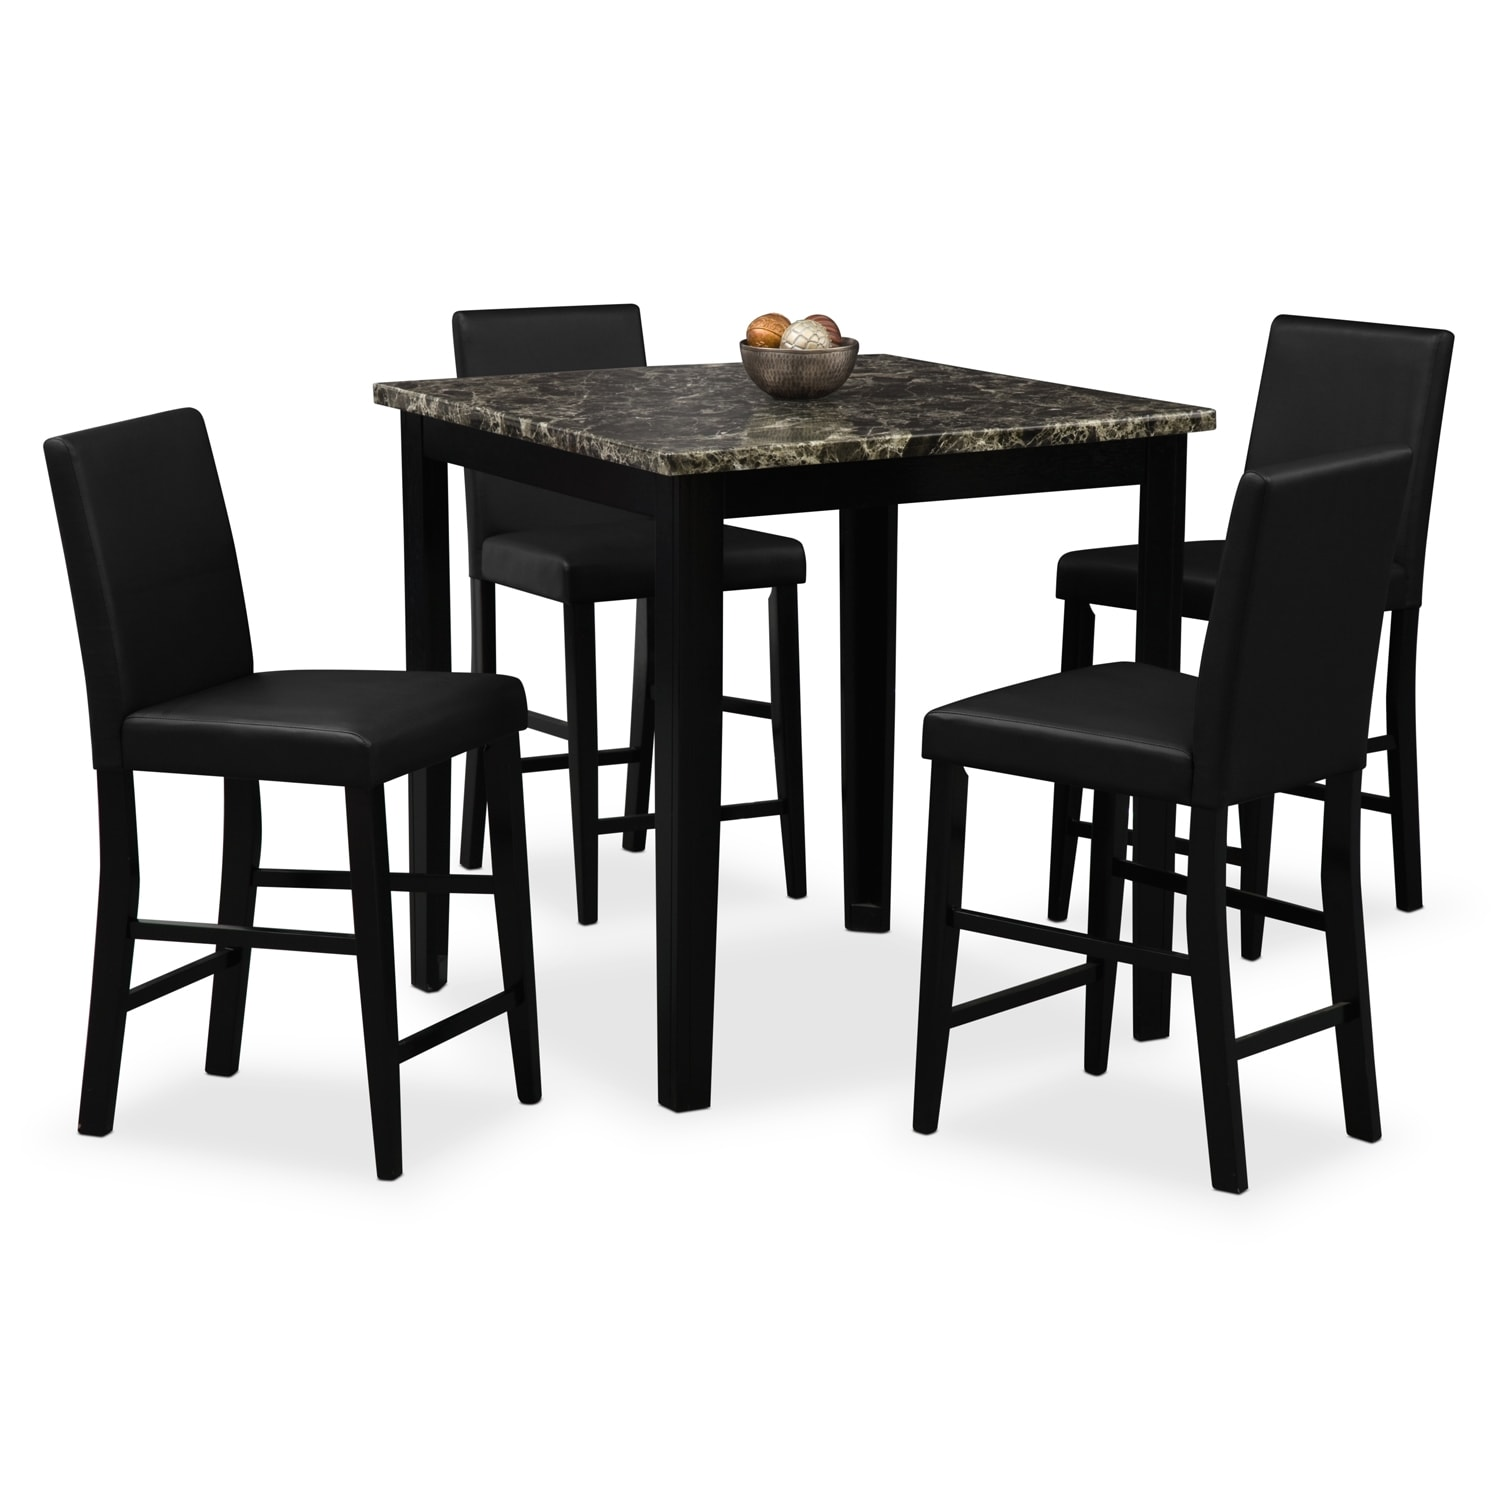 counter height kitchen chairs Shadow Counter Height Table and 4 Chairs Black by Factory Outlet